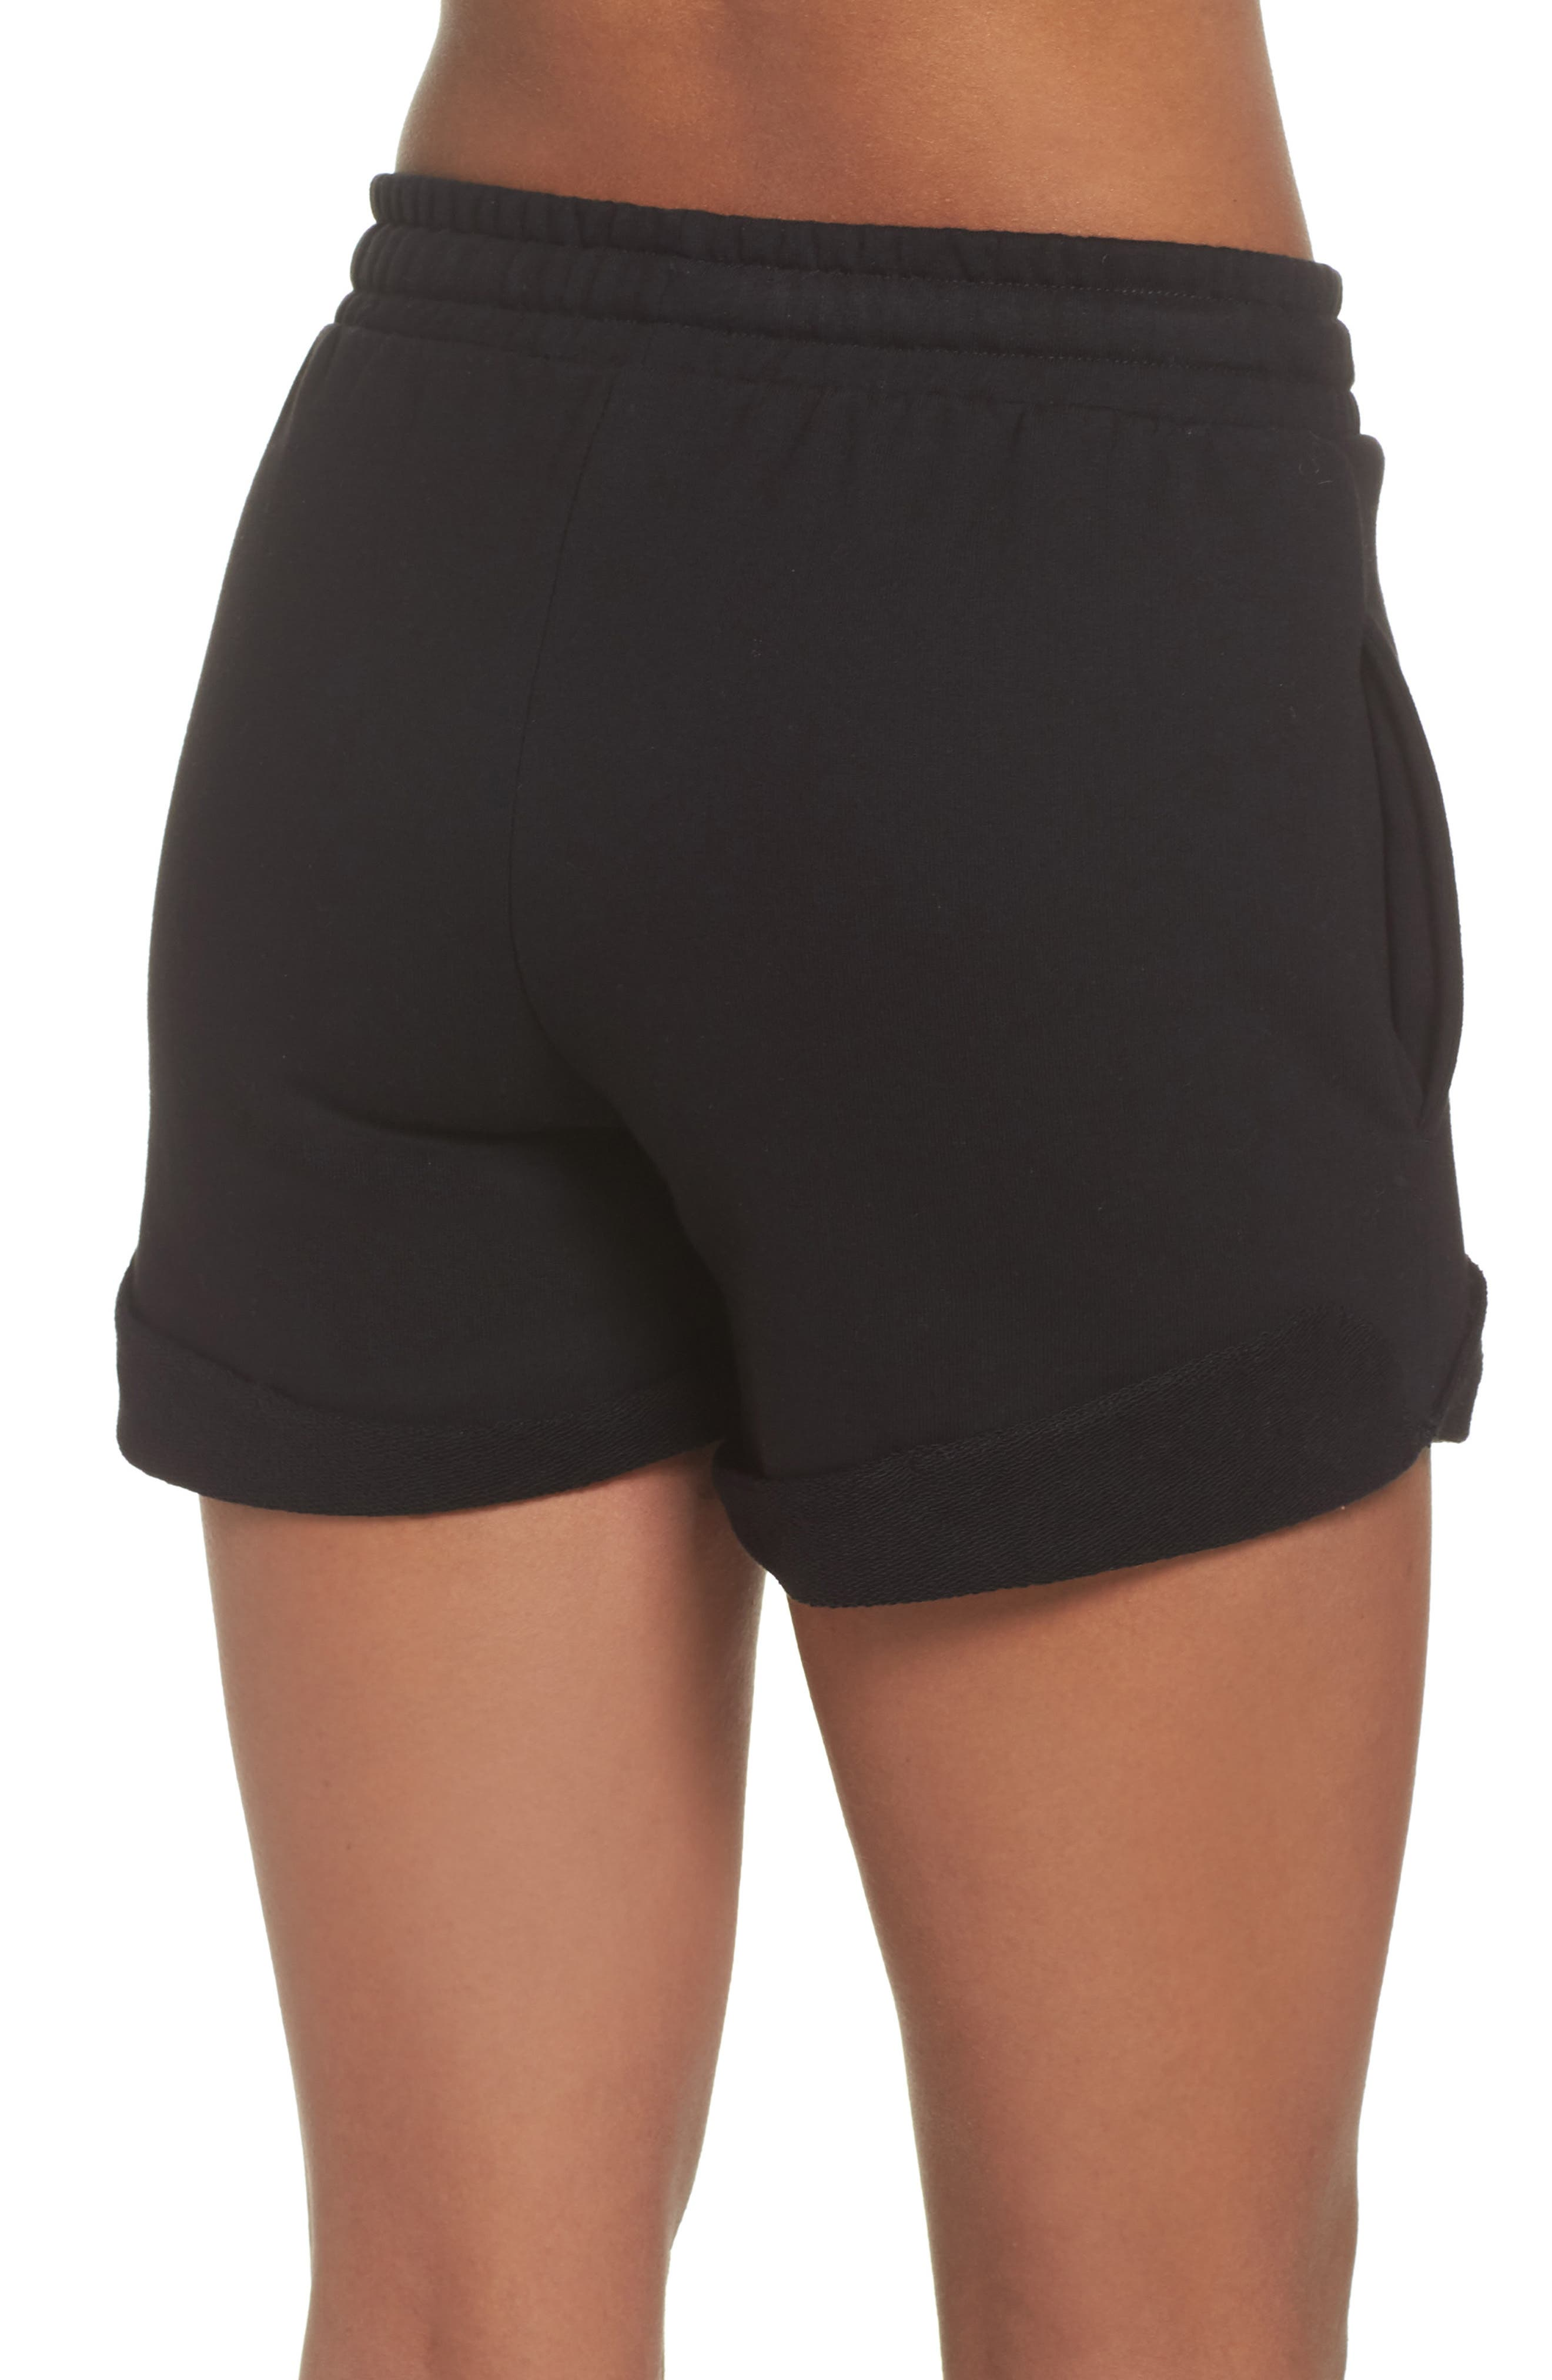 French Terry High Waist Shorts,                             Alternate thumbnail 2, color,                             002